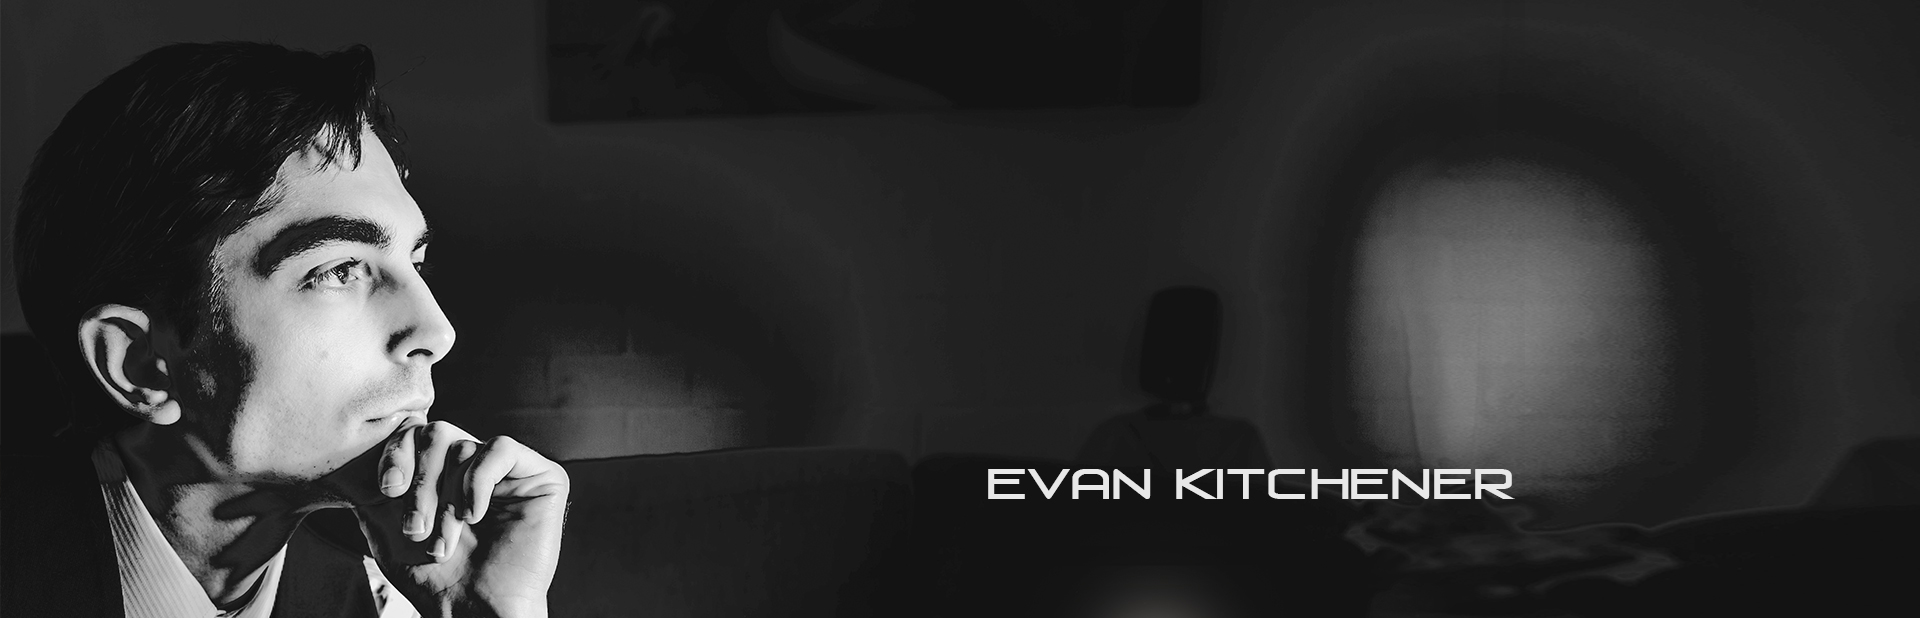 evan-Kitchener-01